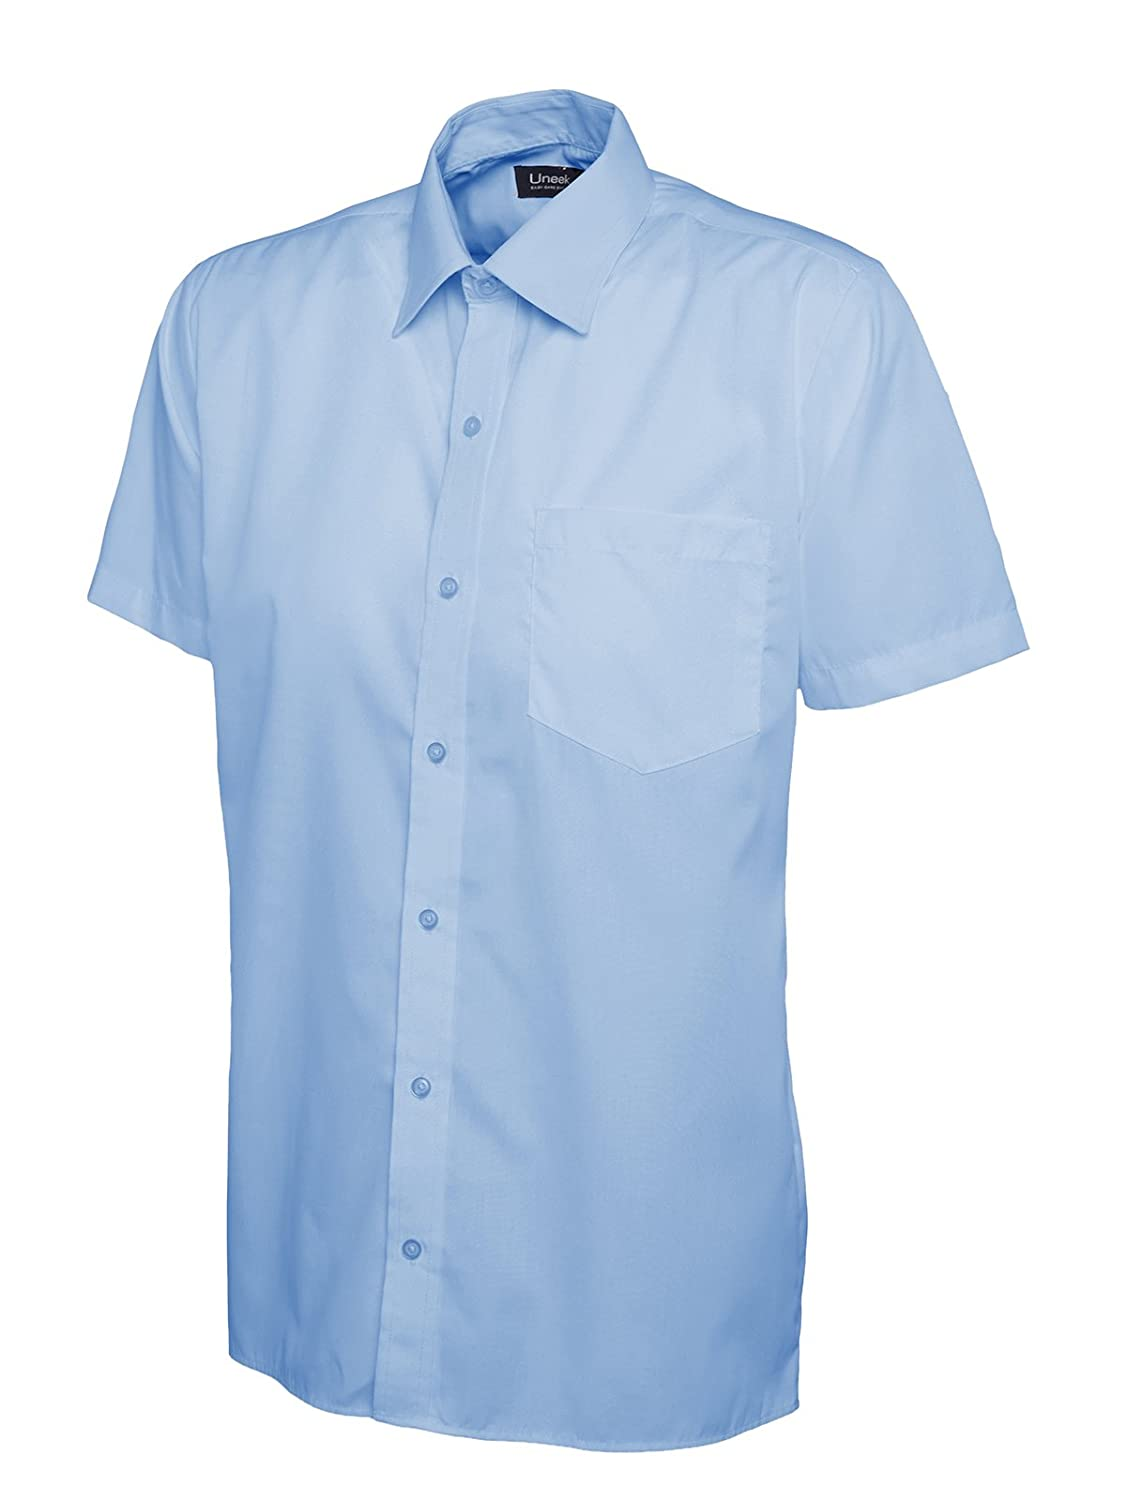 247-Clothing Mens Classic Short Sleeve Shirt Poplin Office Casual Easy Care Colours